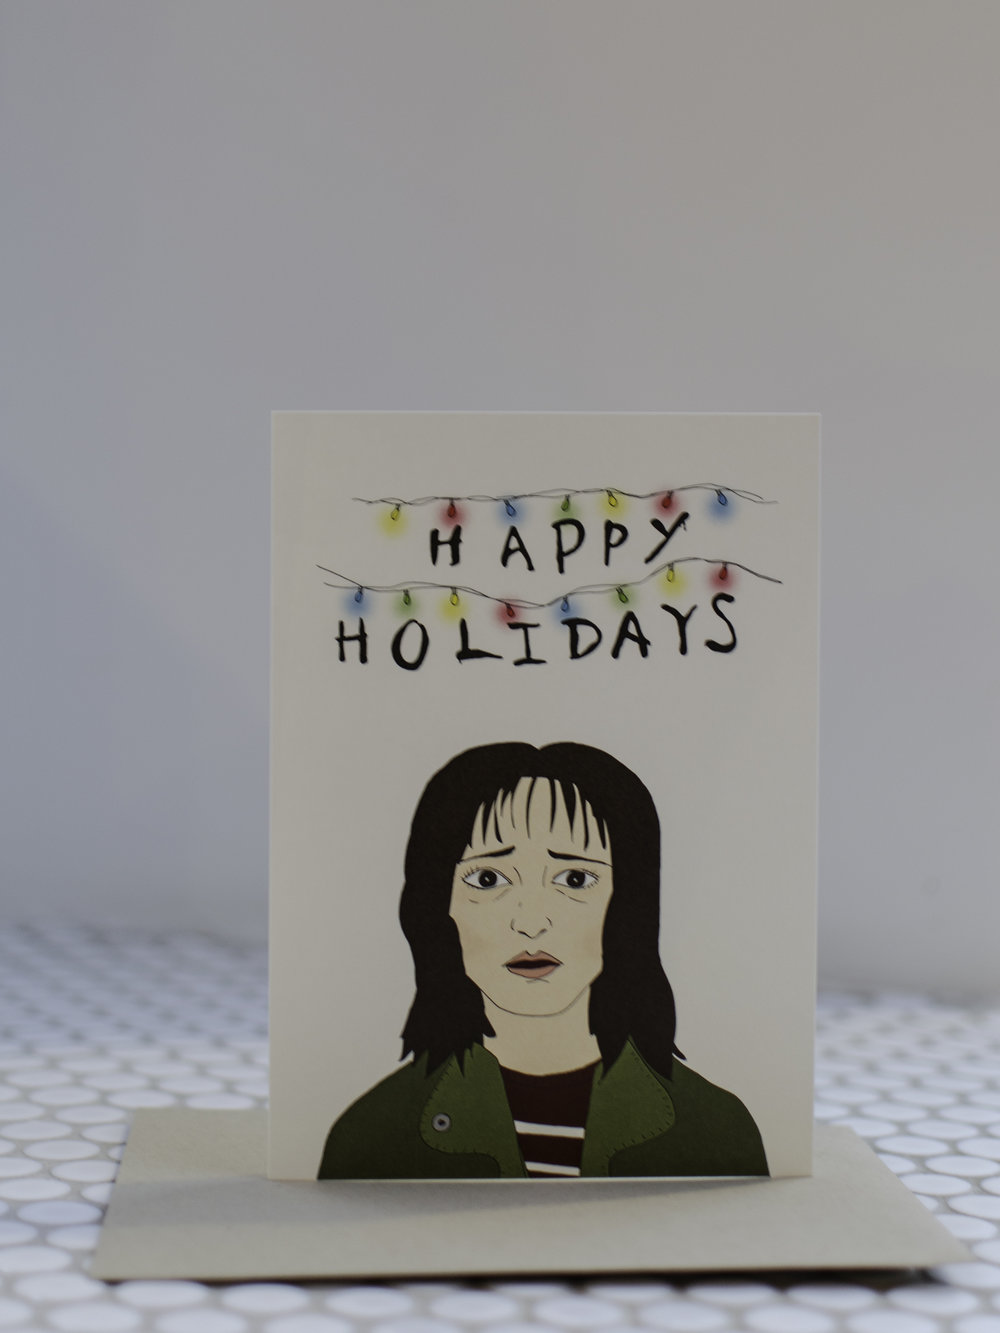 Stranger ThingsHoliday Card - I'm a late bloomer when it comes to getting into Stranger Things but I'm officially caught up and totally hooked! I'd give this card to any of my friends that I've gone into deep conversations about our theories with.